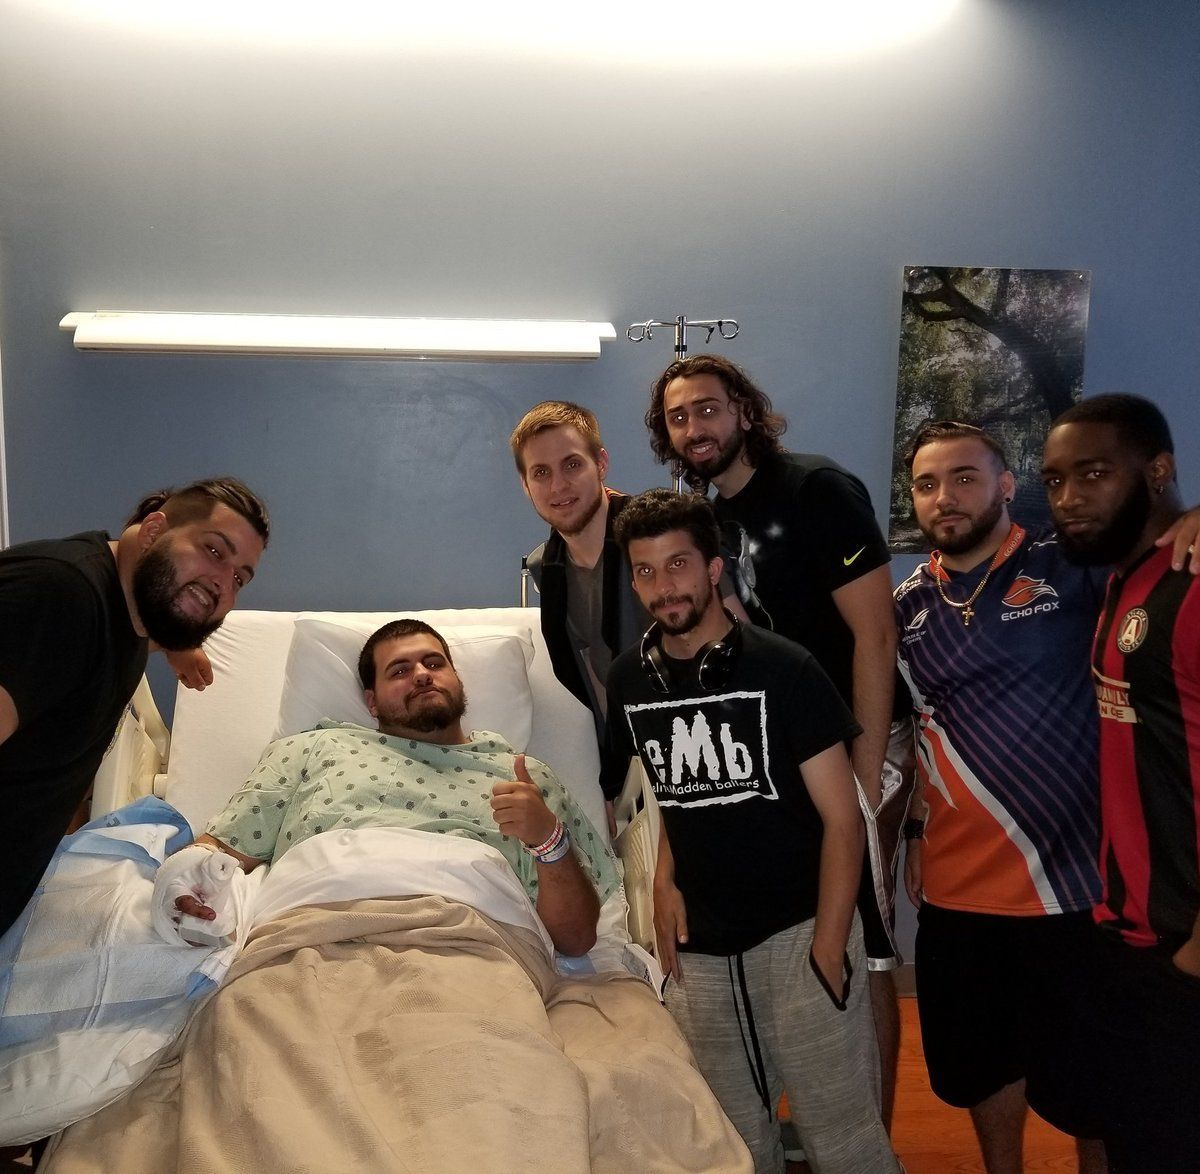 A photo shared by Sujeil Lopez shows her son 26-year-old Timothy Anselino recovering in the hospital following Sundays shooting